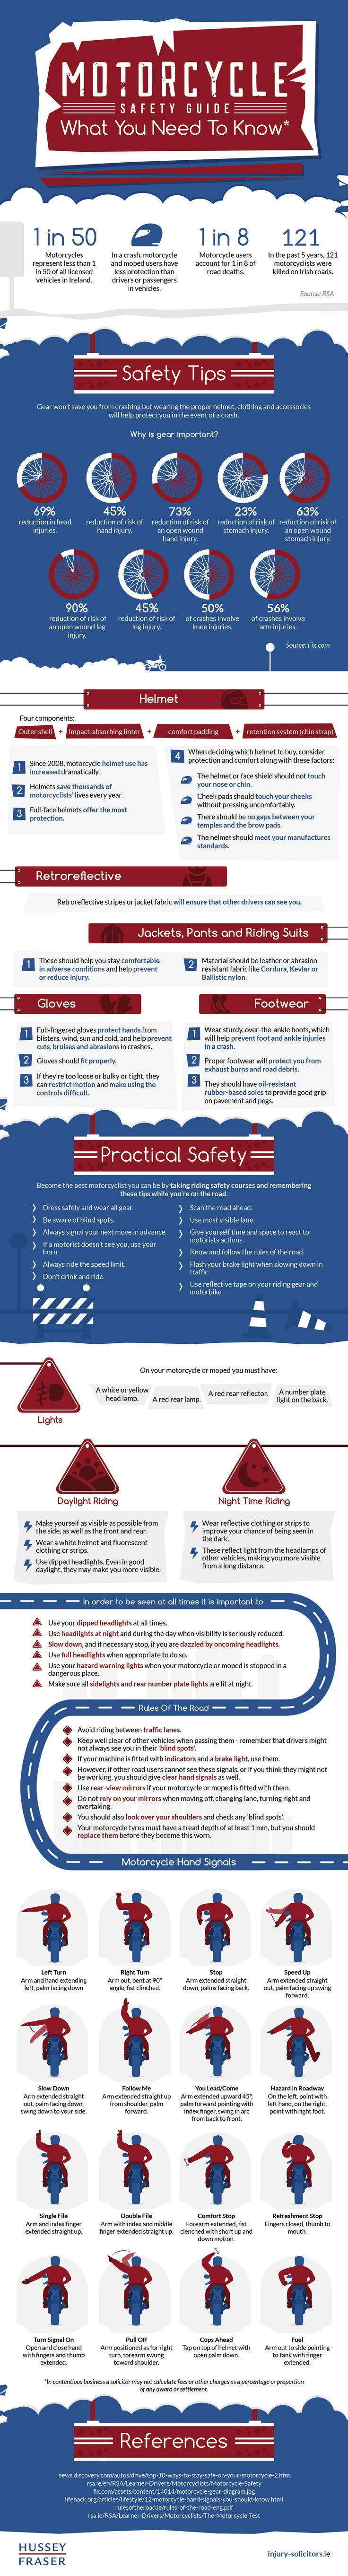 2016 Motorcycle Safety Guide Infographic